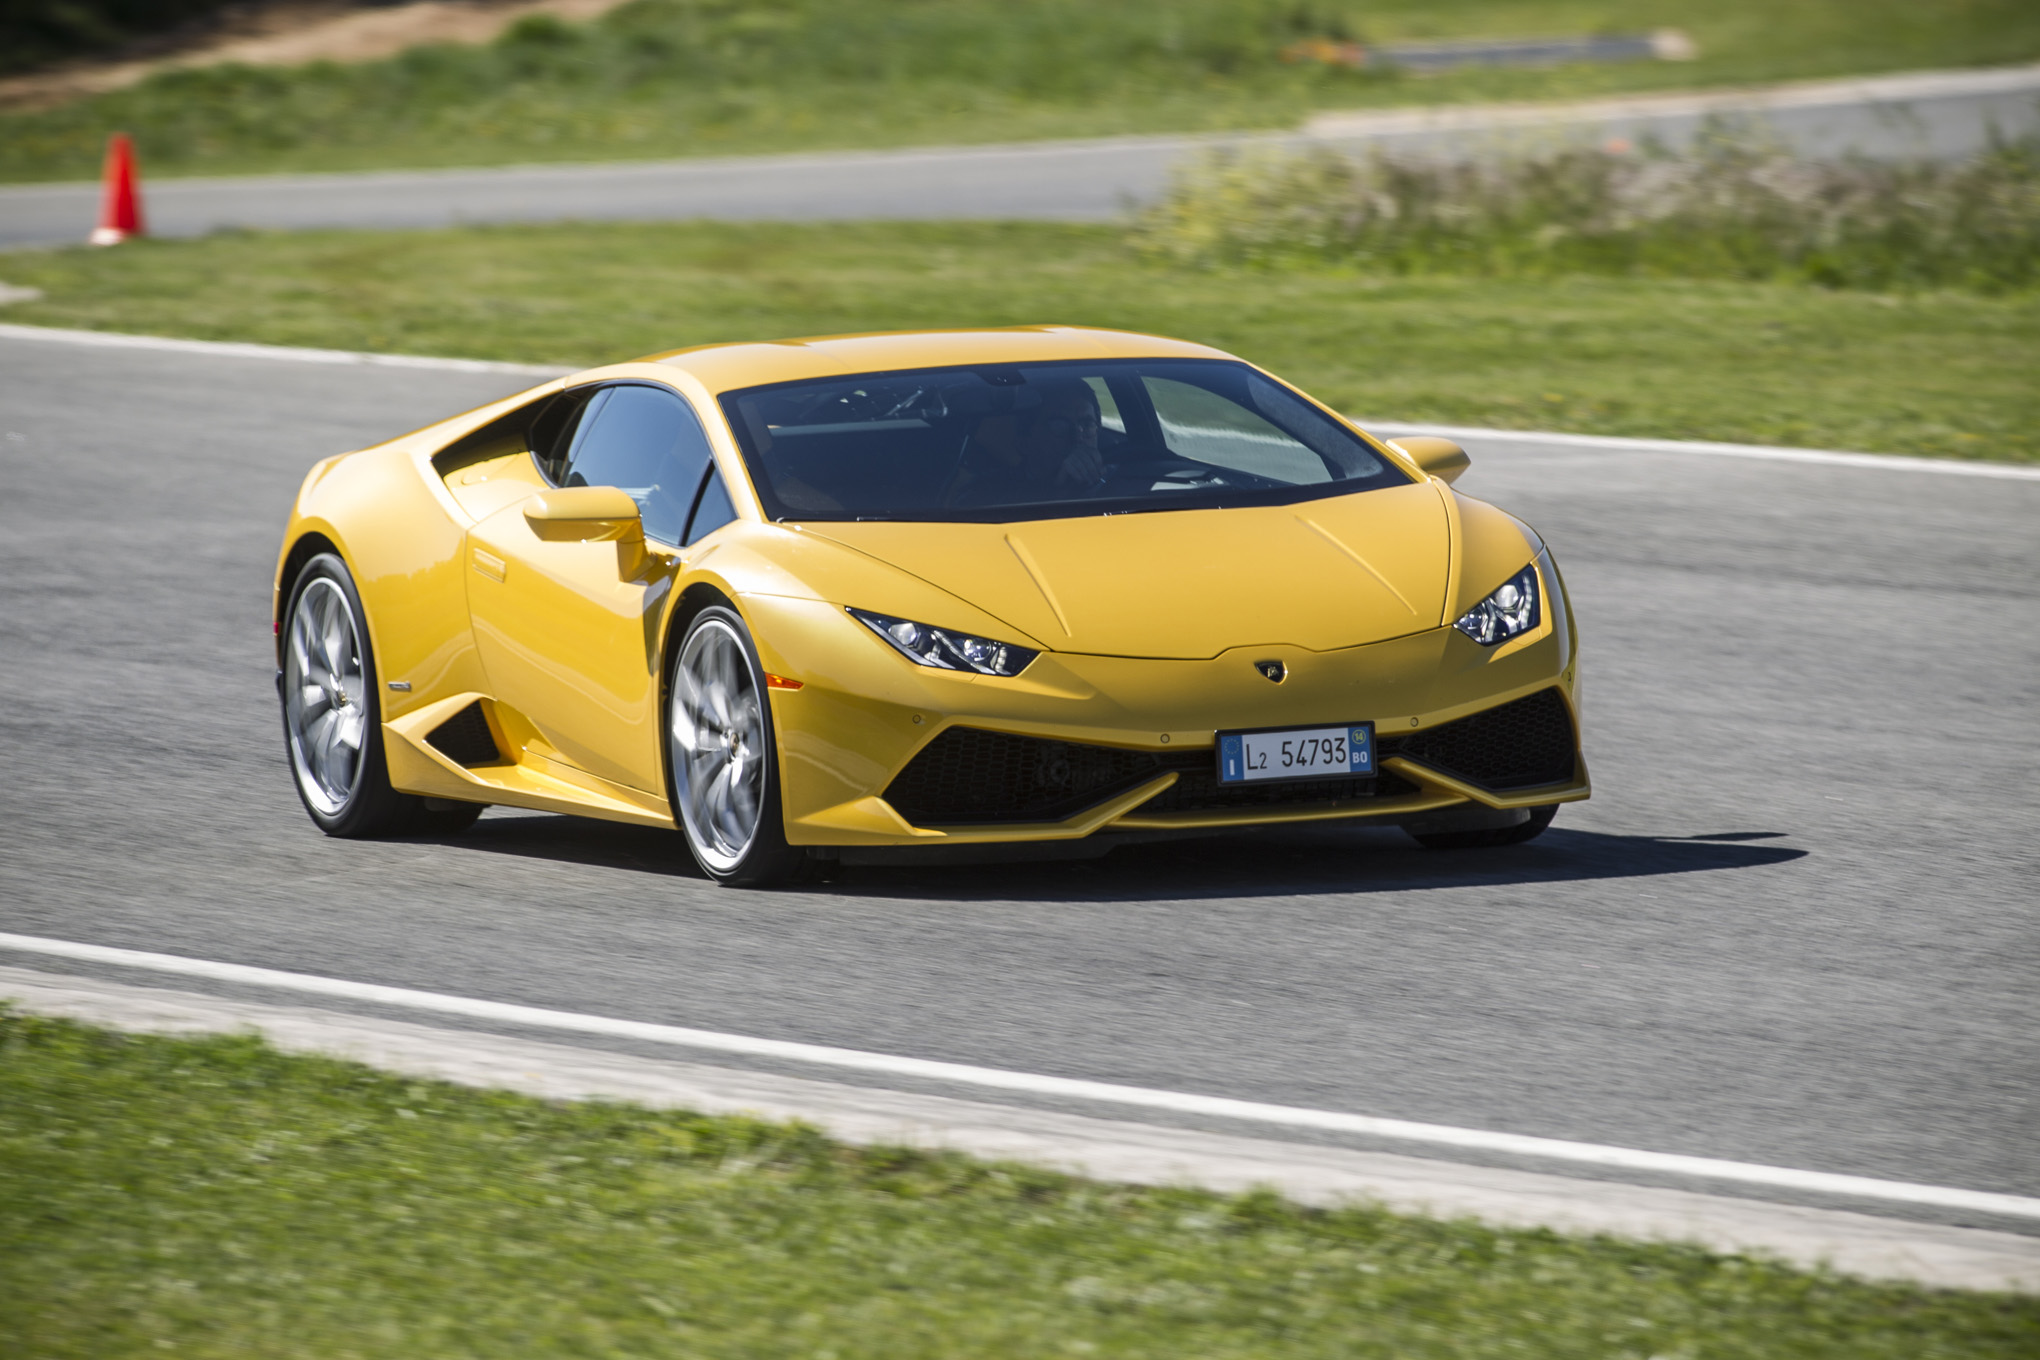 TOTD: Lamborghini Huracan's Intentional Roughness - Good or Bad Thing?